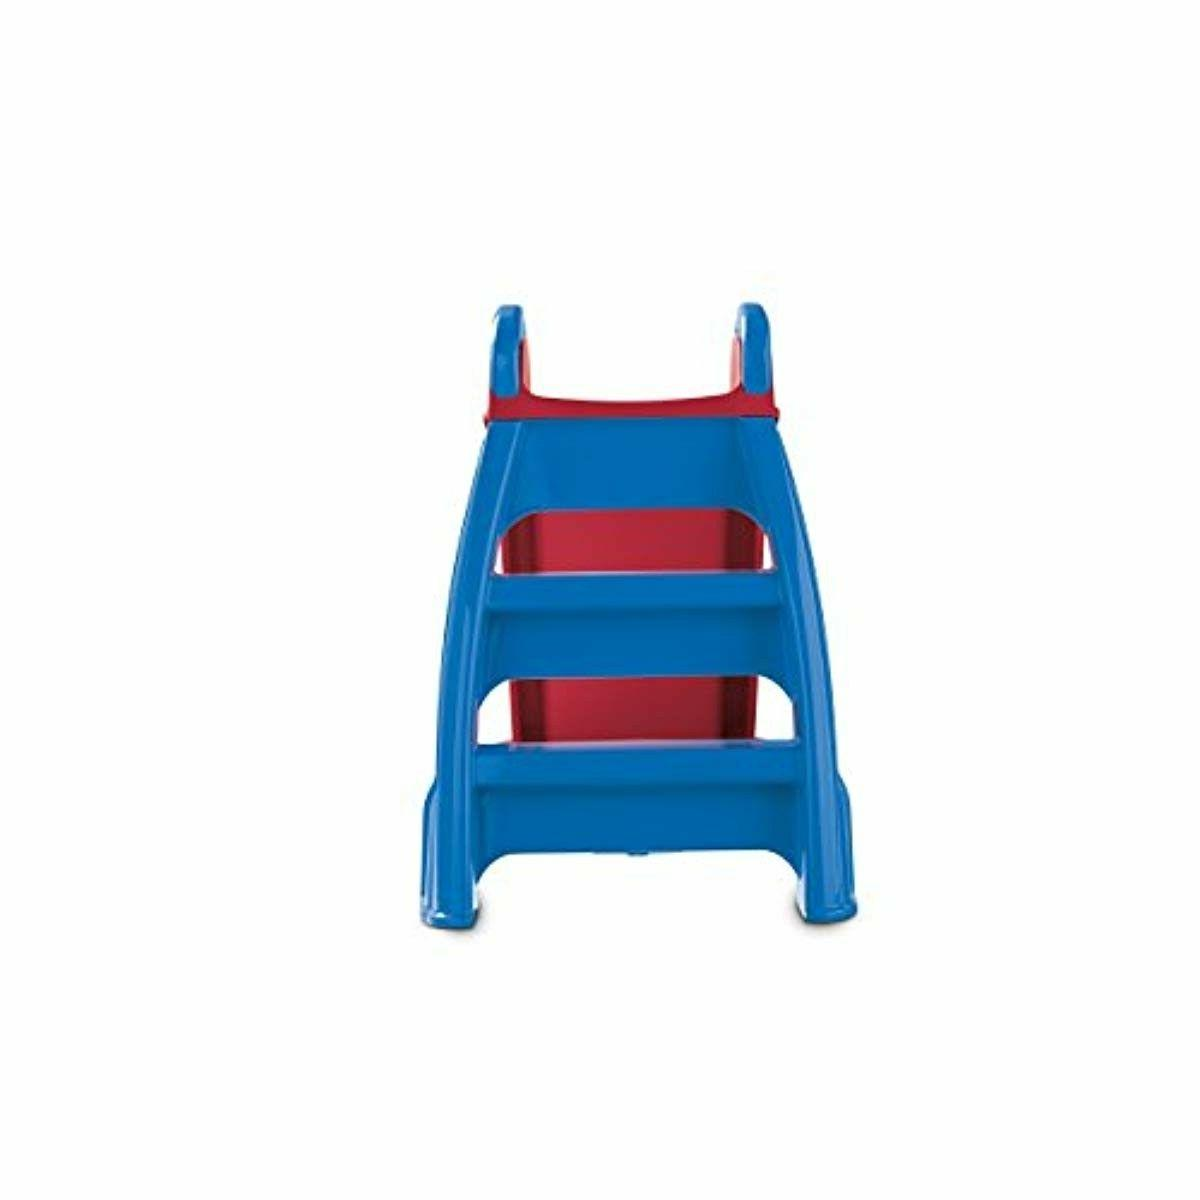 Little First Slide Red Blue Outdoor Toddler Toy Kids Strong